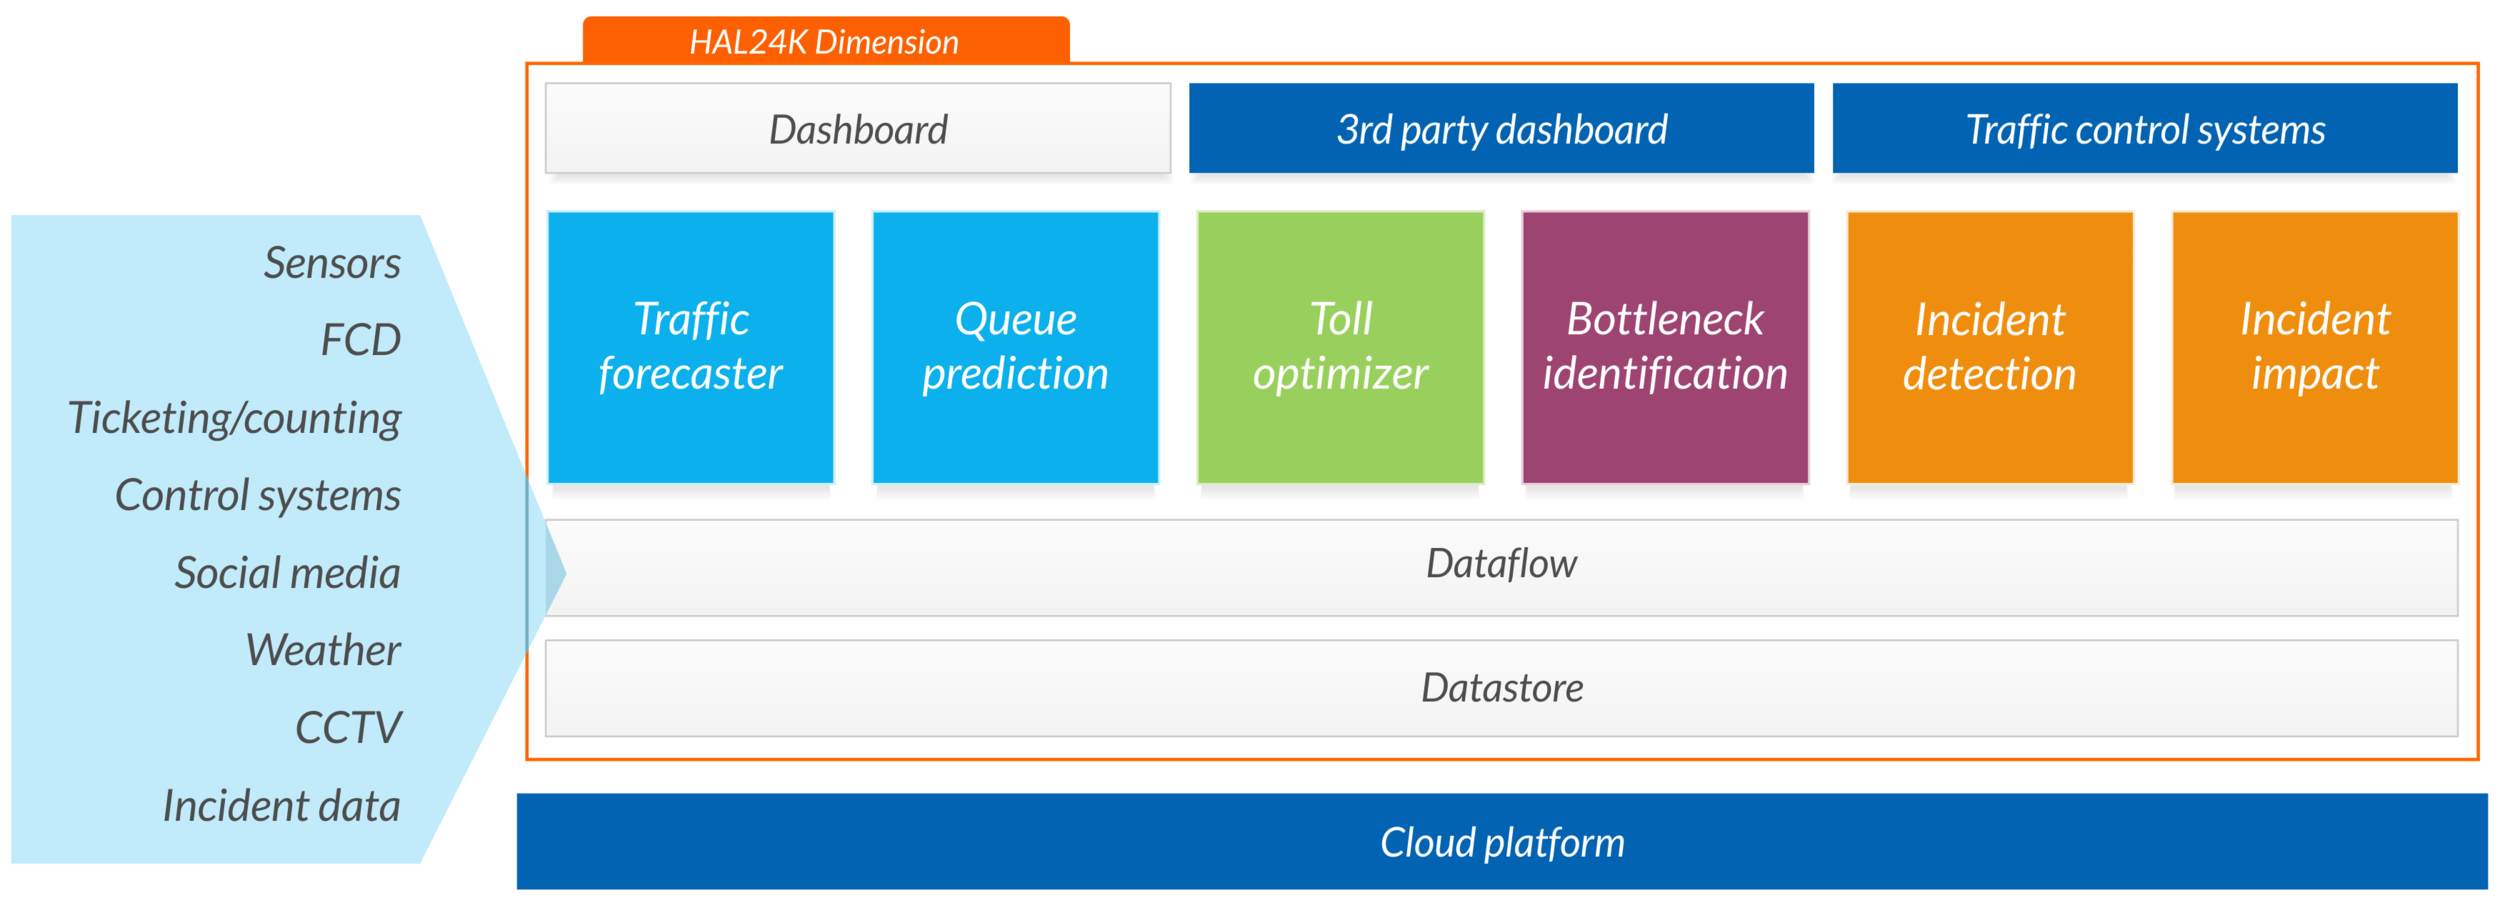 Operationalizing-traffic-flow-optimization-with-dimension.png.png